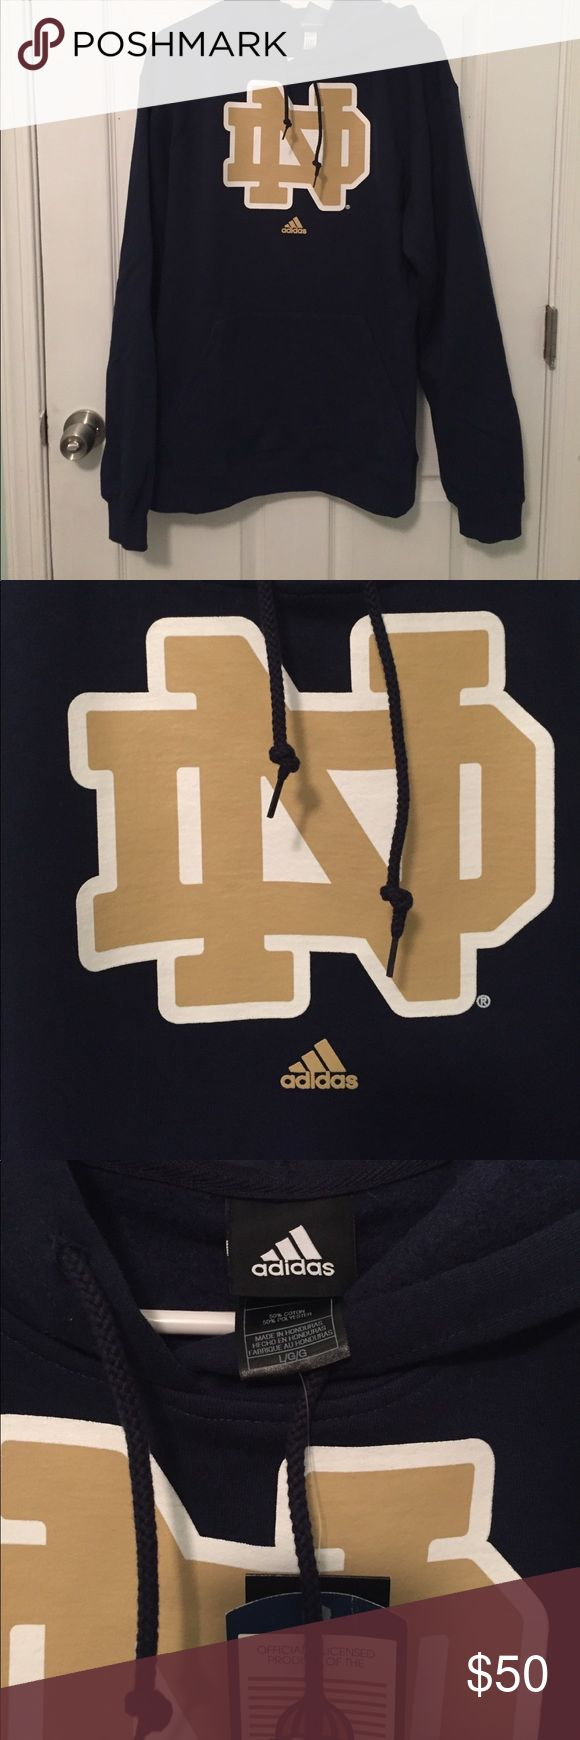 ADIDAS Notre Dame Hoodie Adidas Hoodie purchased at the University of Notre Dame bookstore!!! NWT! Super soft on the inside and is a good weight for a chilly summer night or even in the fall or winter! Great quality Hoodie! Traditional Notre Dame navy and gold! Adidas Shirts Sweatshirts & Hoodies